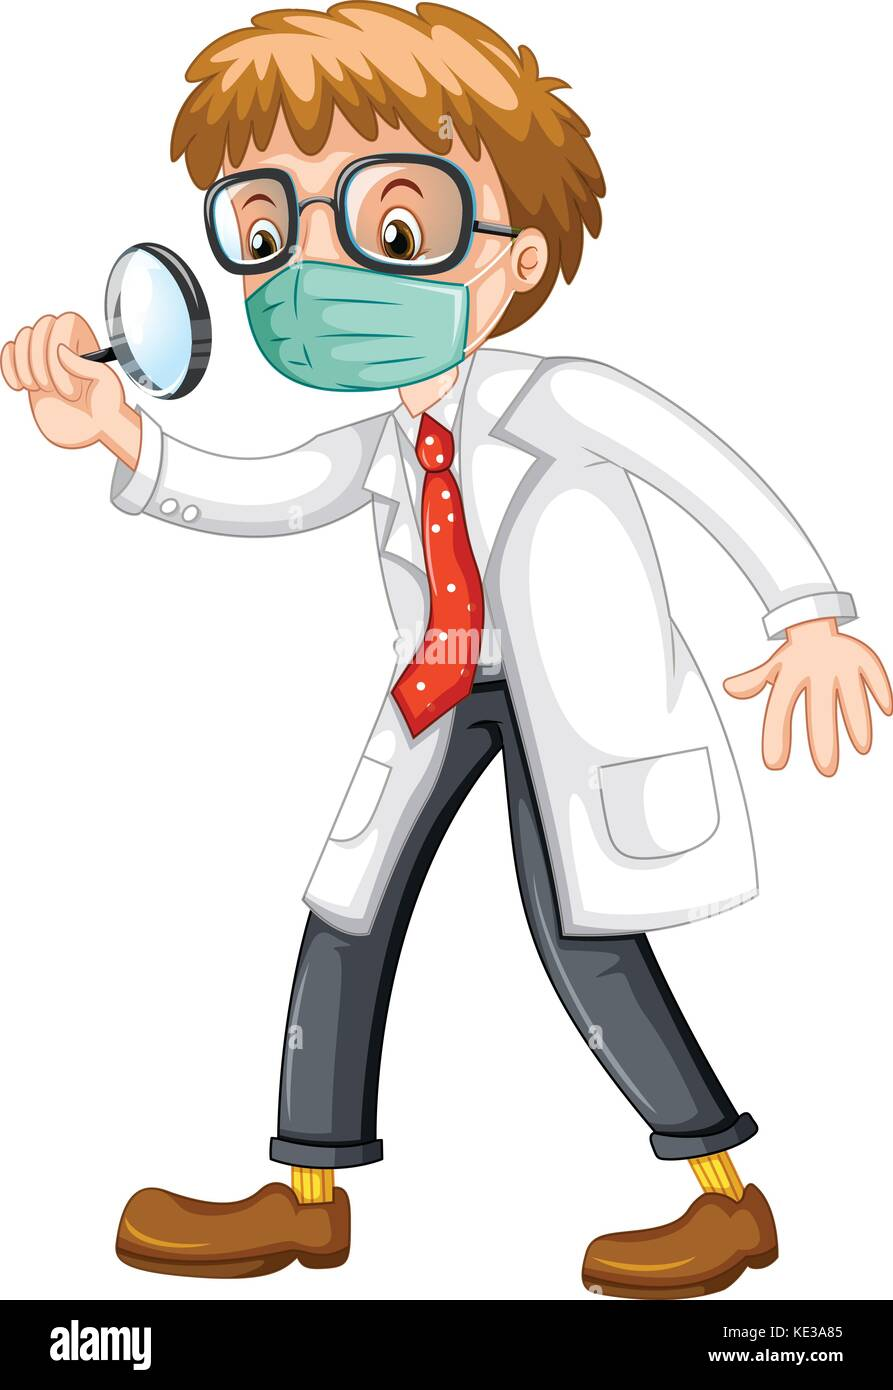 Doctor looking through magnifying glass illustration - Stock Vector